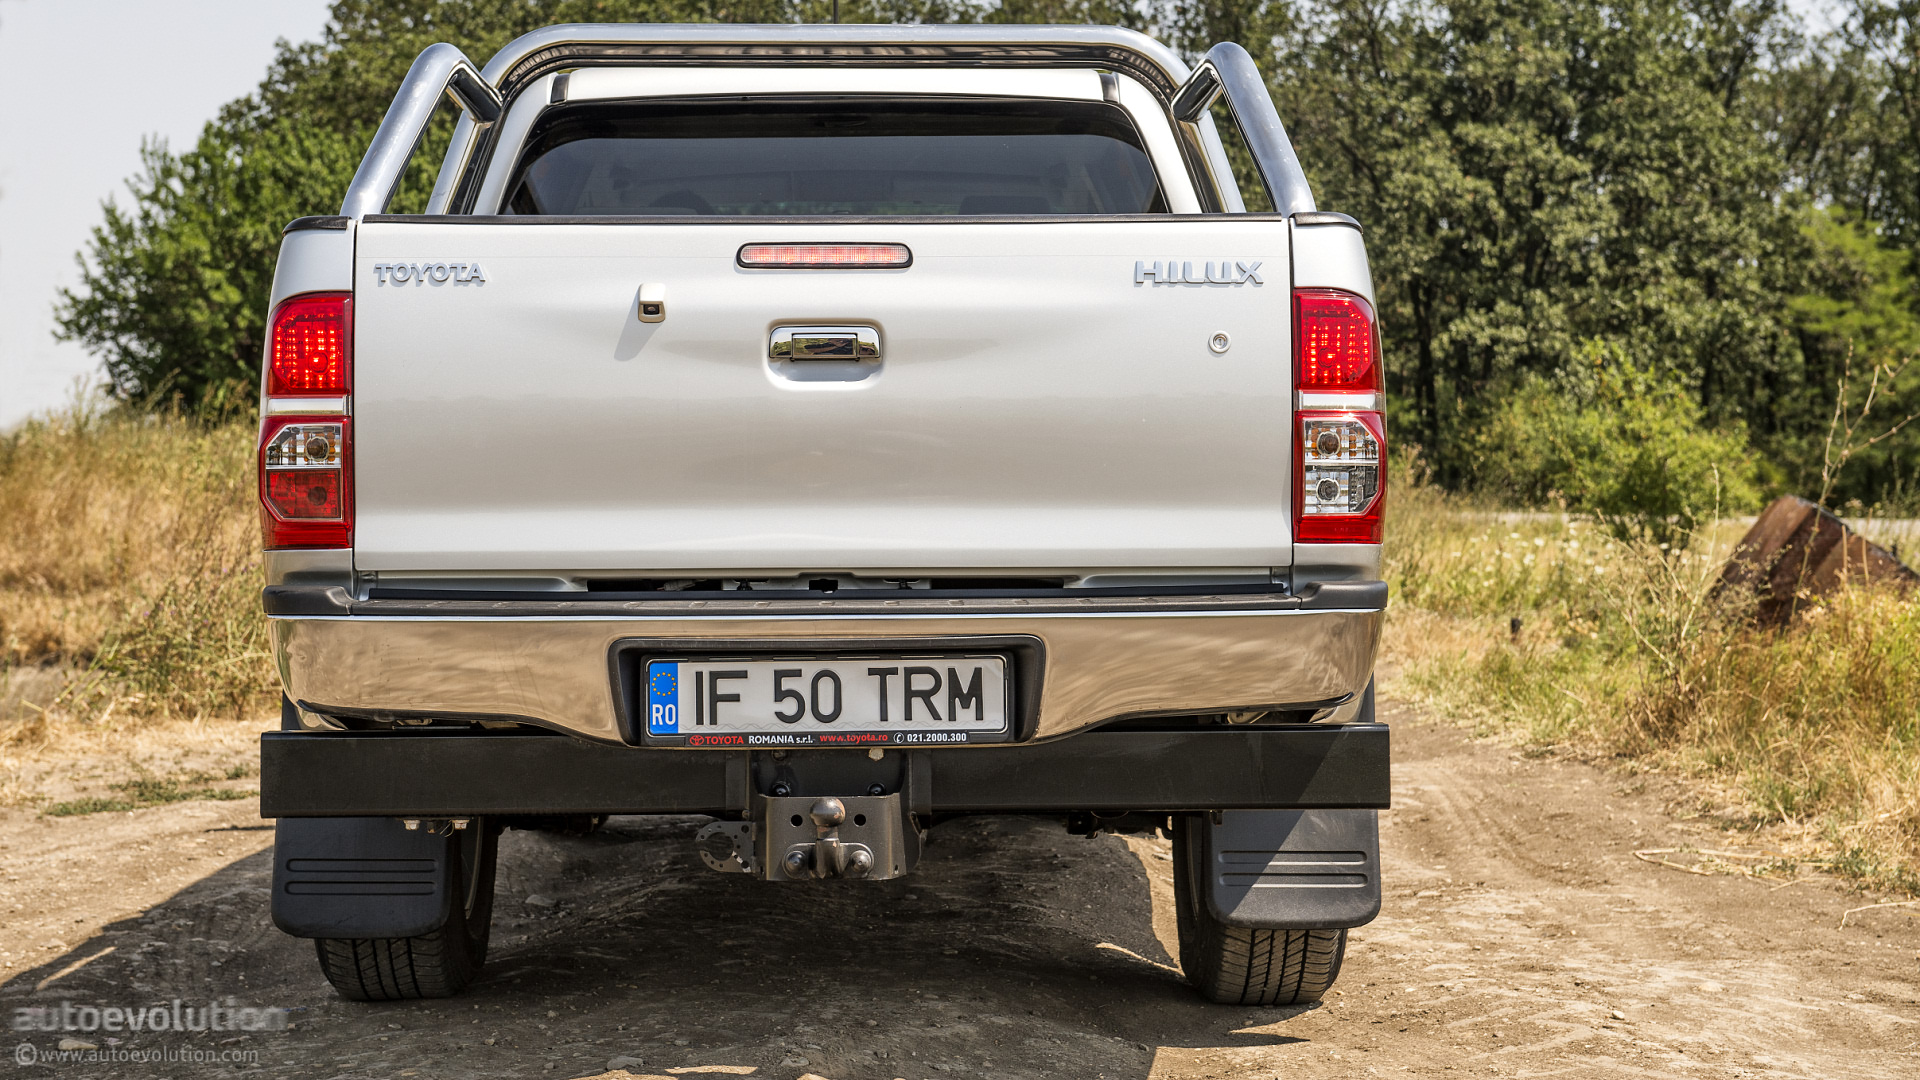 toyota hilux review guest editor opinions autoevolution. Black Bedroom Furniture Sets. Home Design Ideas